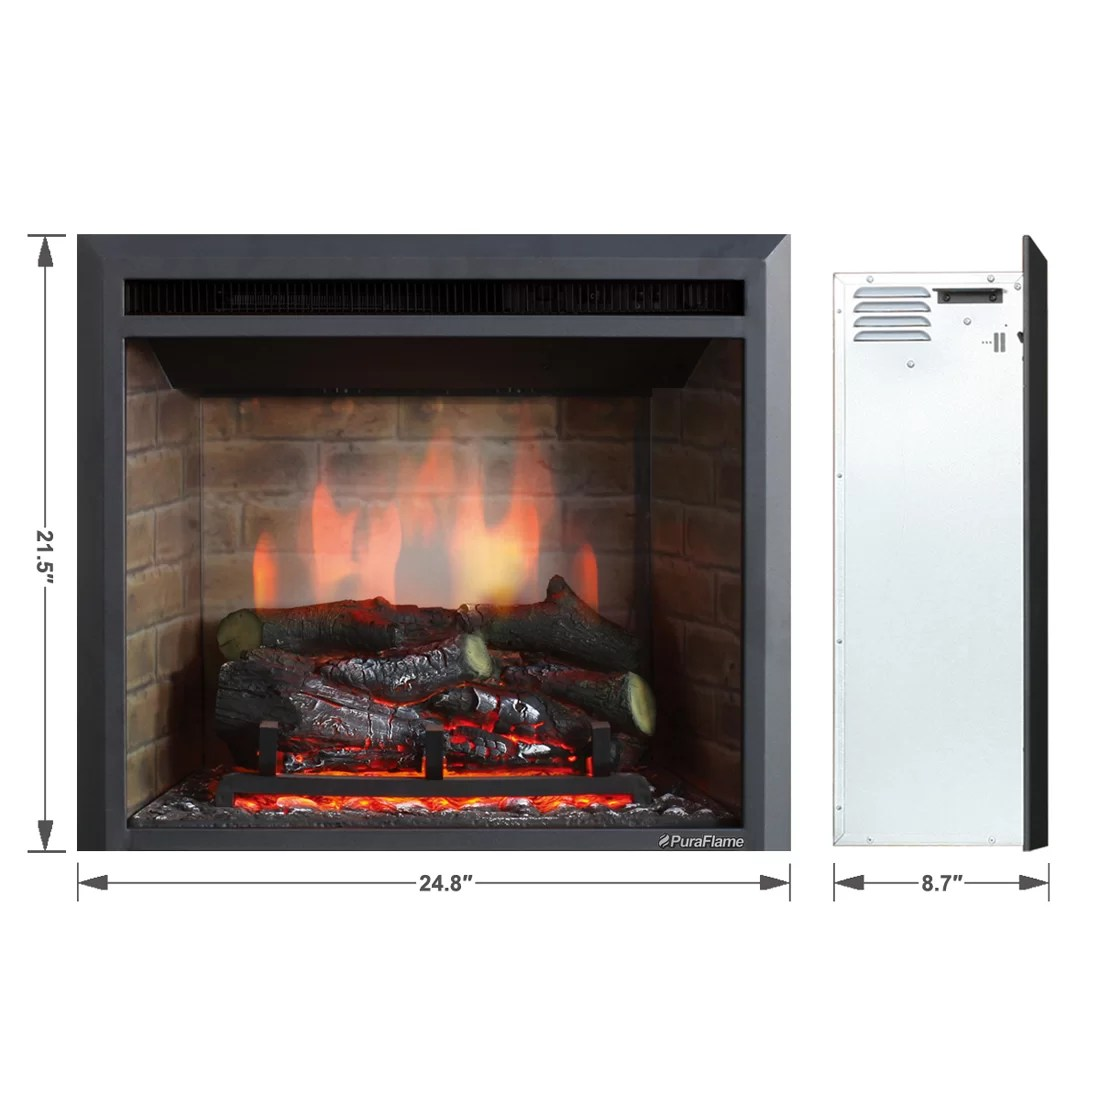 "30 Greystone Electric Fireplace Fireplace Inspiration Puraflame 33"" Black 750/1500w Western Wall Mount Electric"